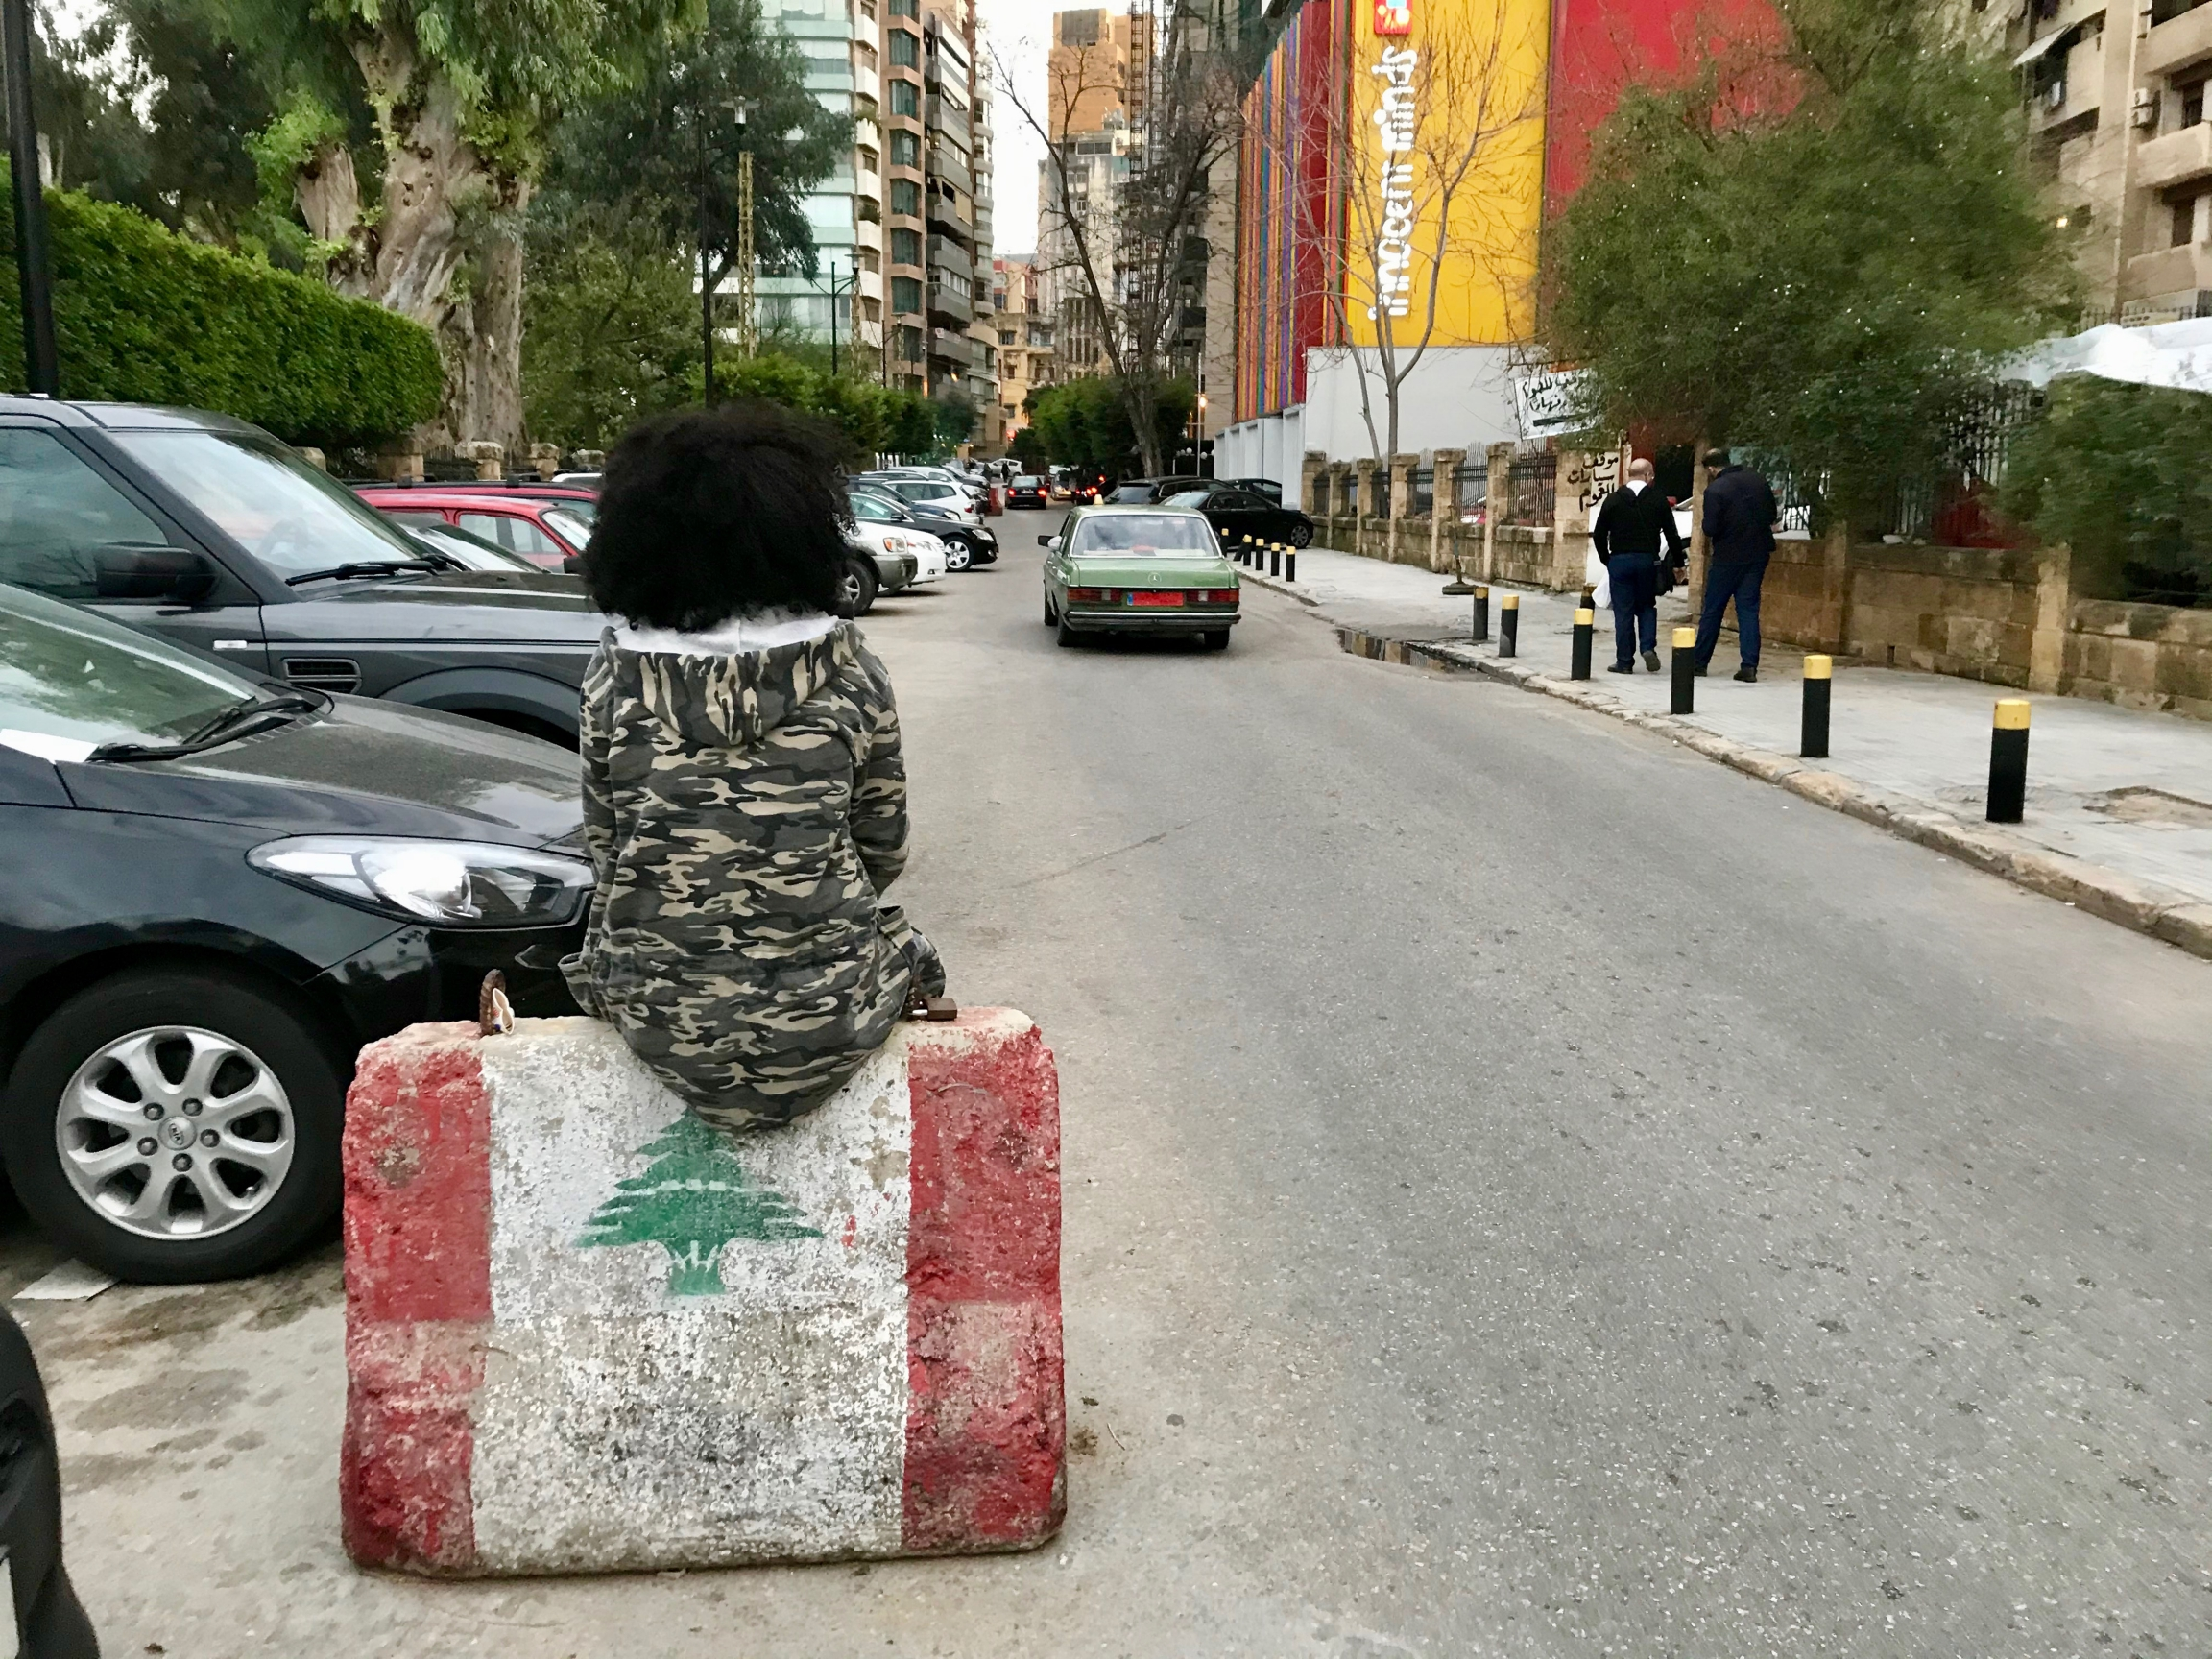 A young woman wearing a camouflage jacket sits on a barricade in middle of street.